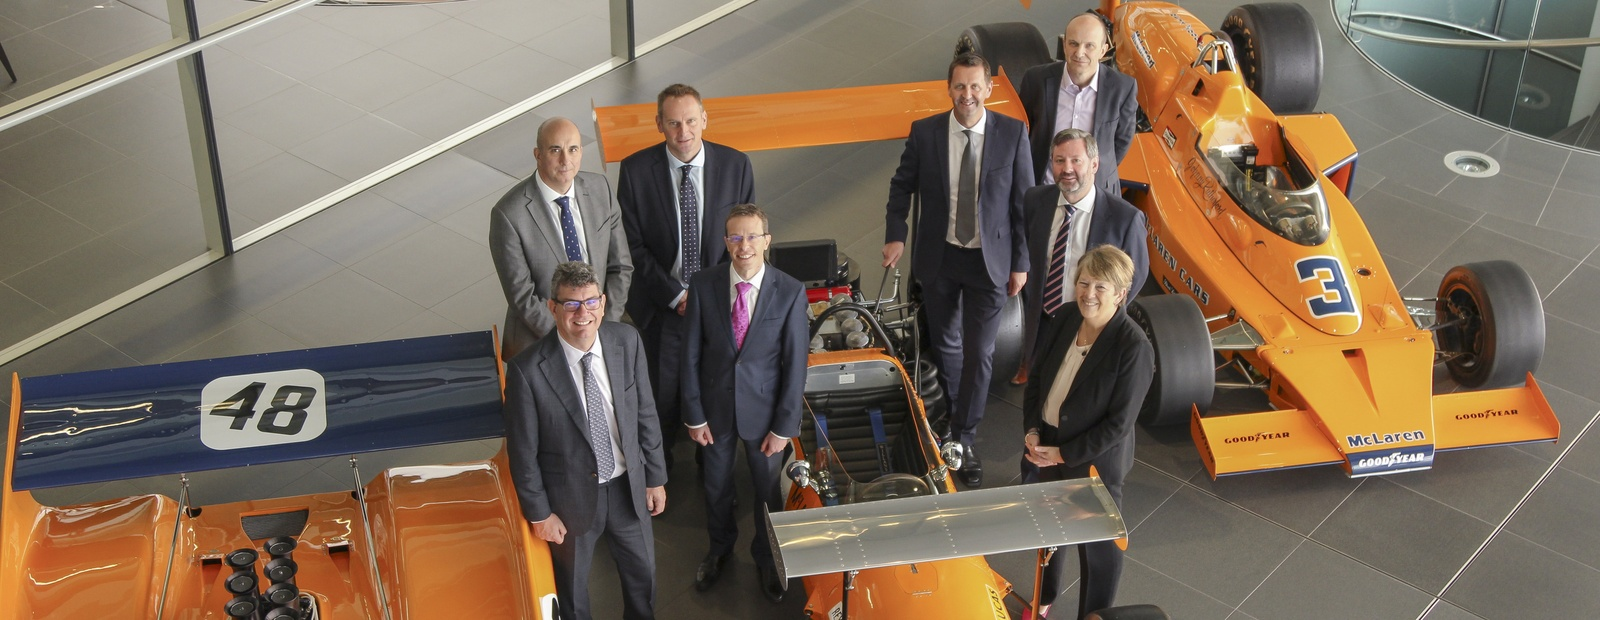 McLAREN DELOITTE AND NATS ANNOUNCE NEW COLLABORATION